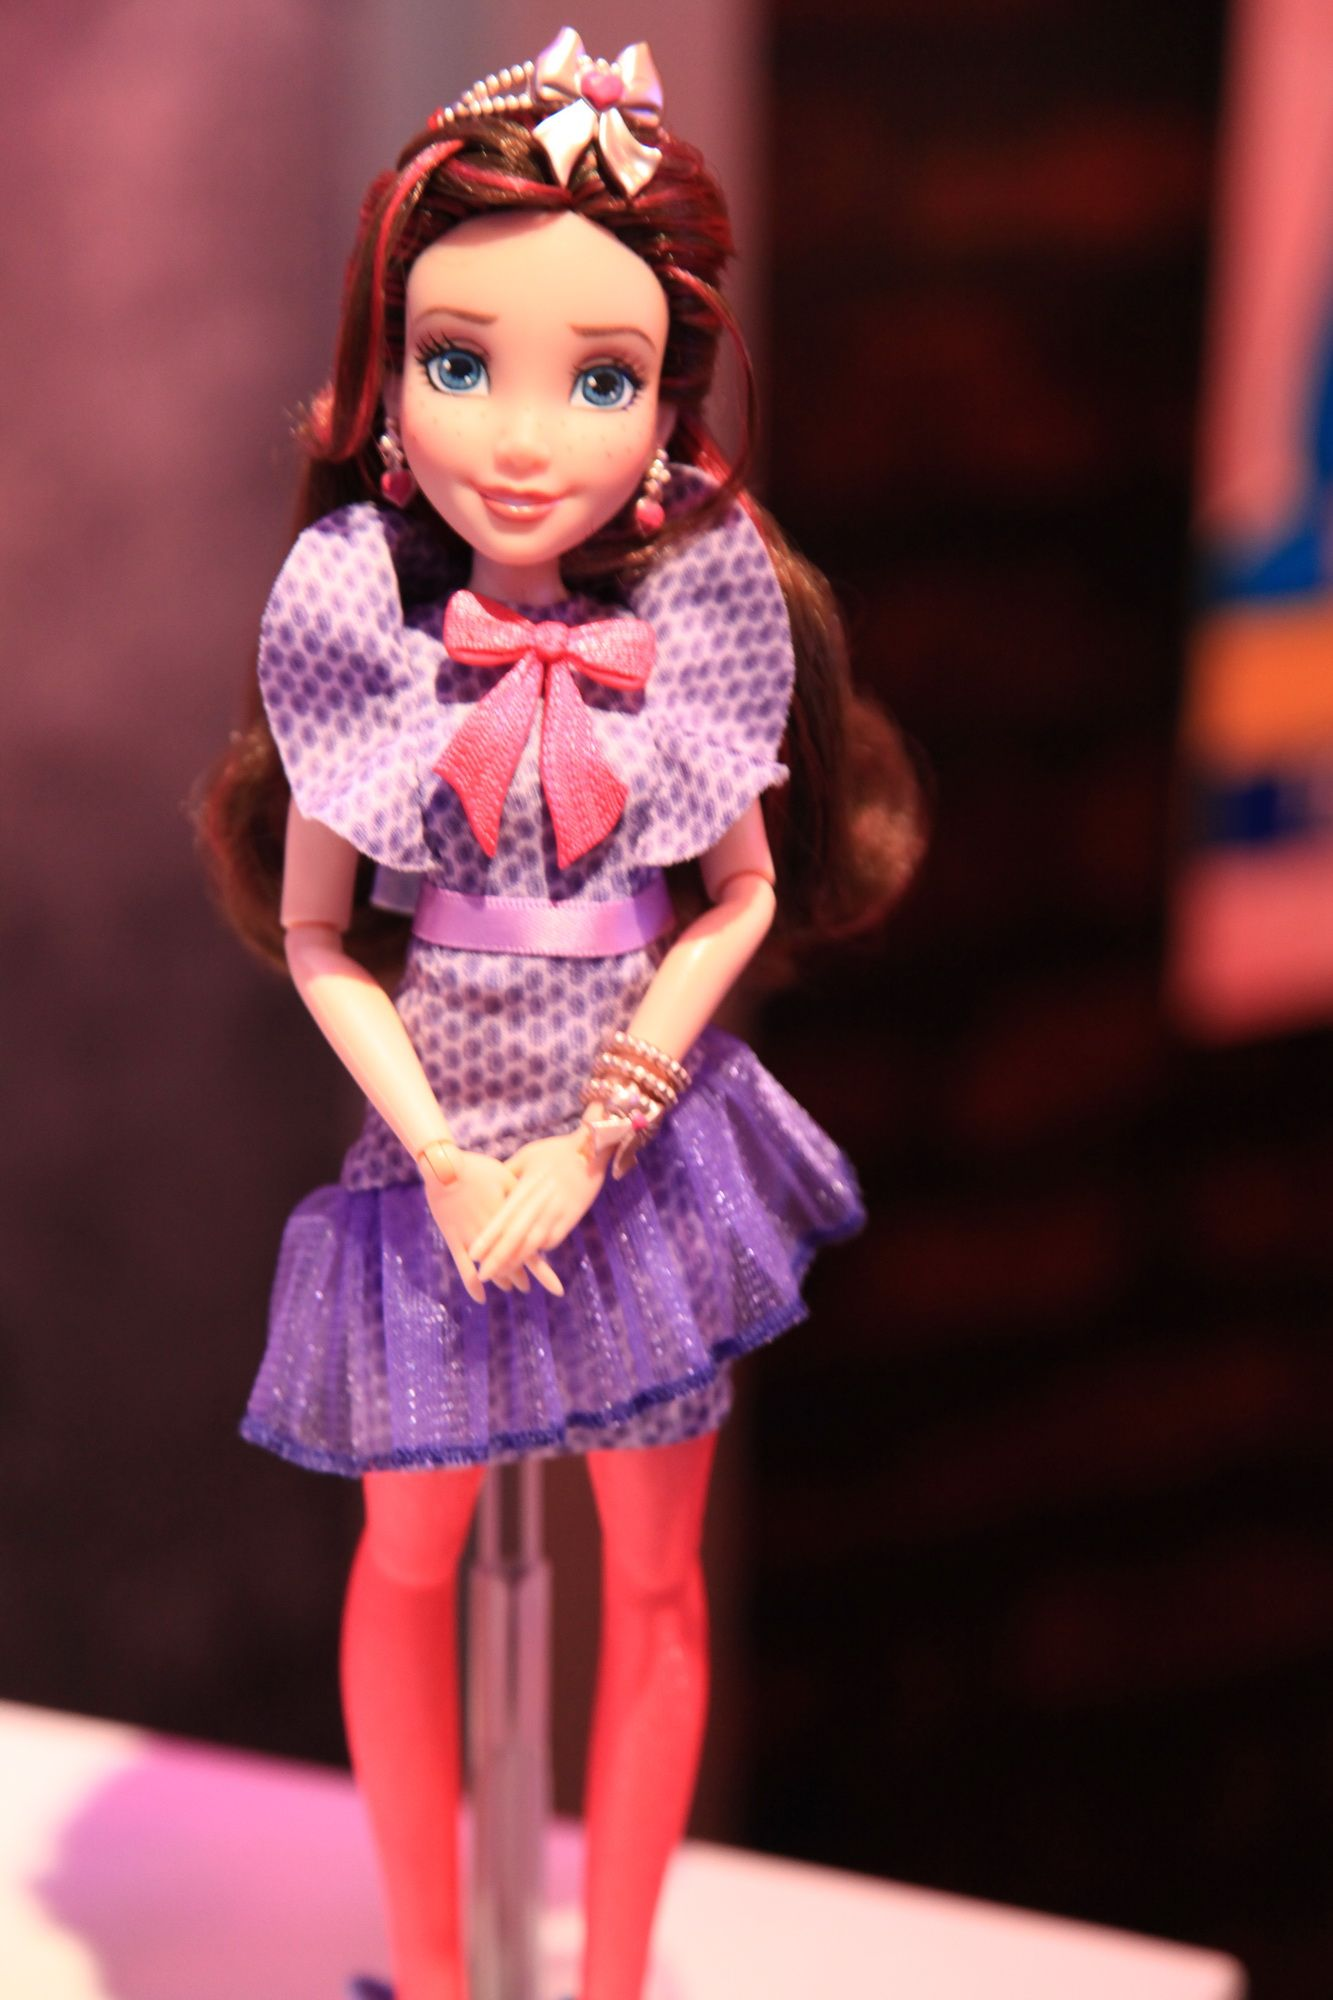 Disney Descendants Jane Daughter Of The Fairy Godmother In Her Signature Outfit Doll By Hasbro 2015 Disney Descendants Disney Dolls Descendants Party